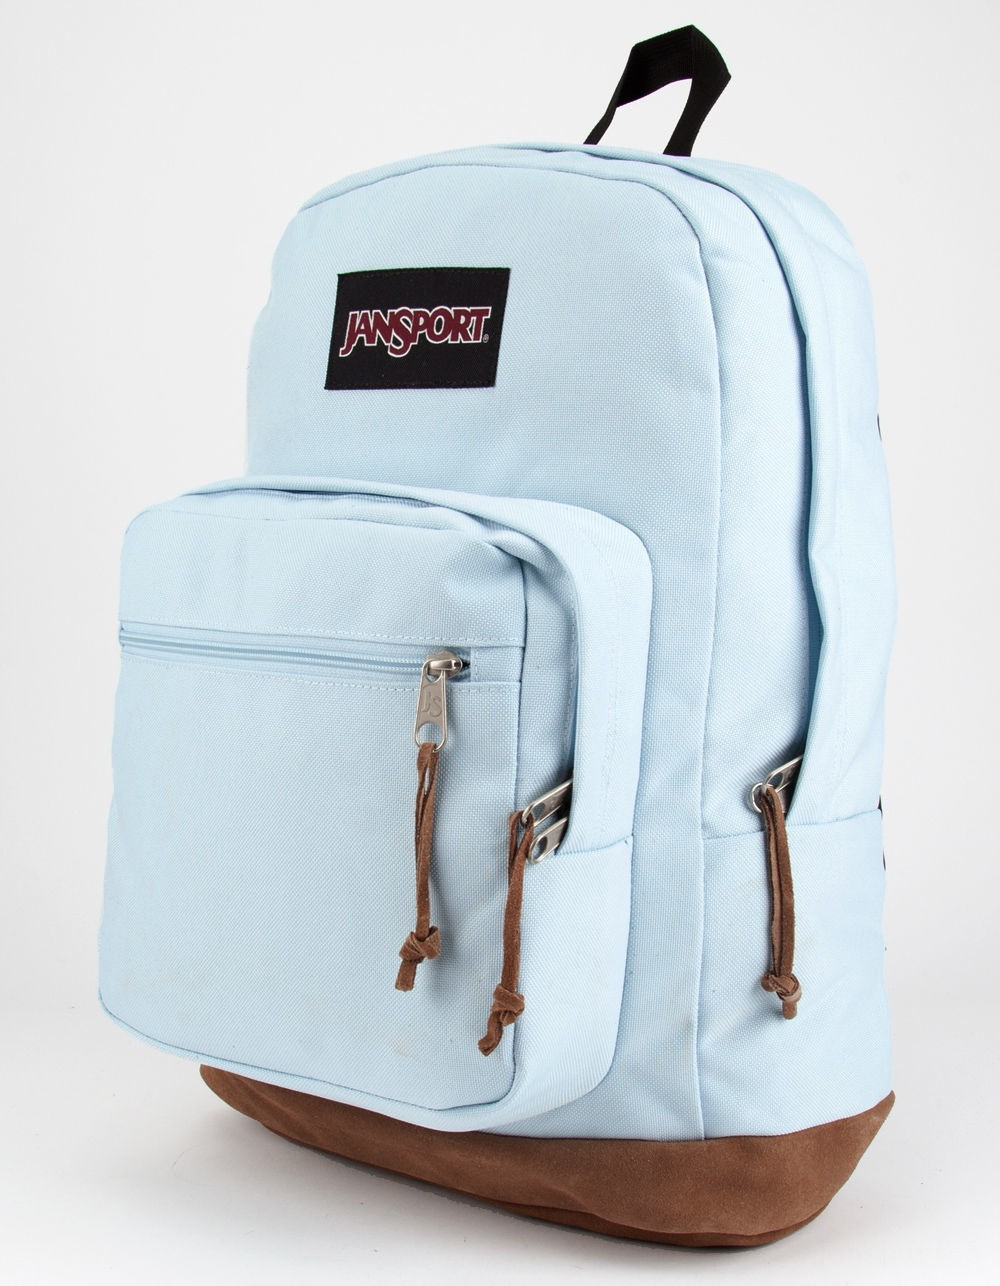 limited sale jansport right pack backpack byblu best price last chance